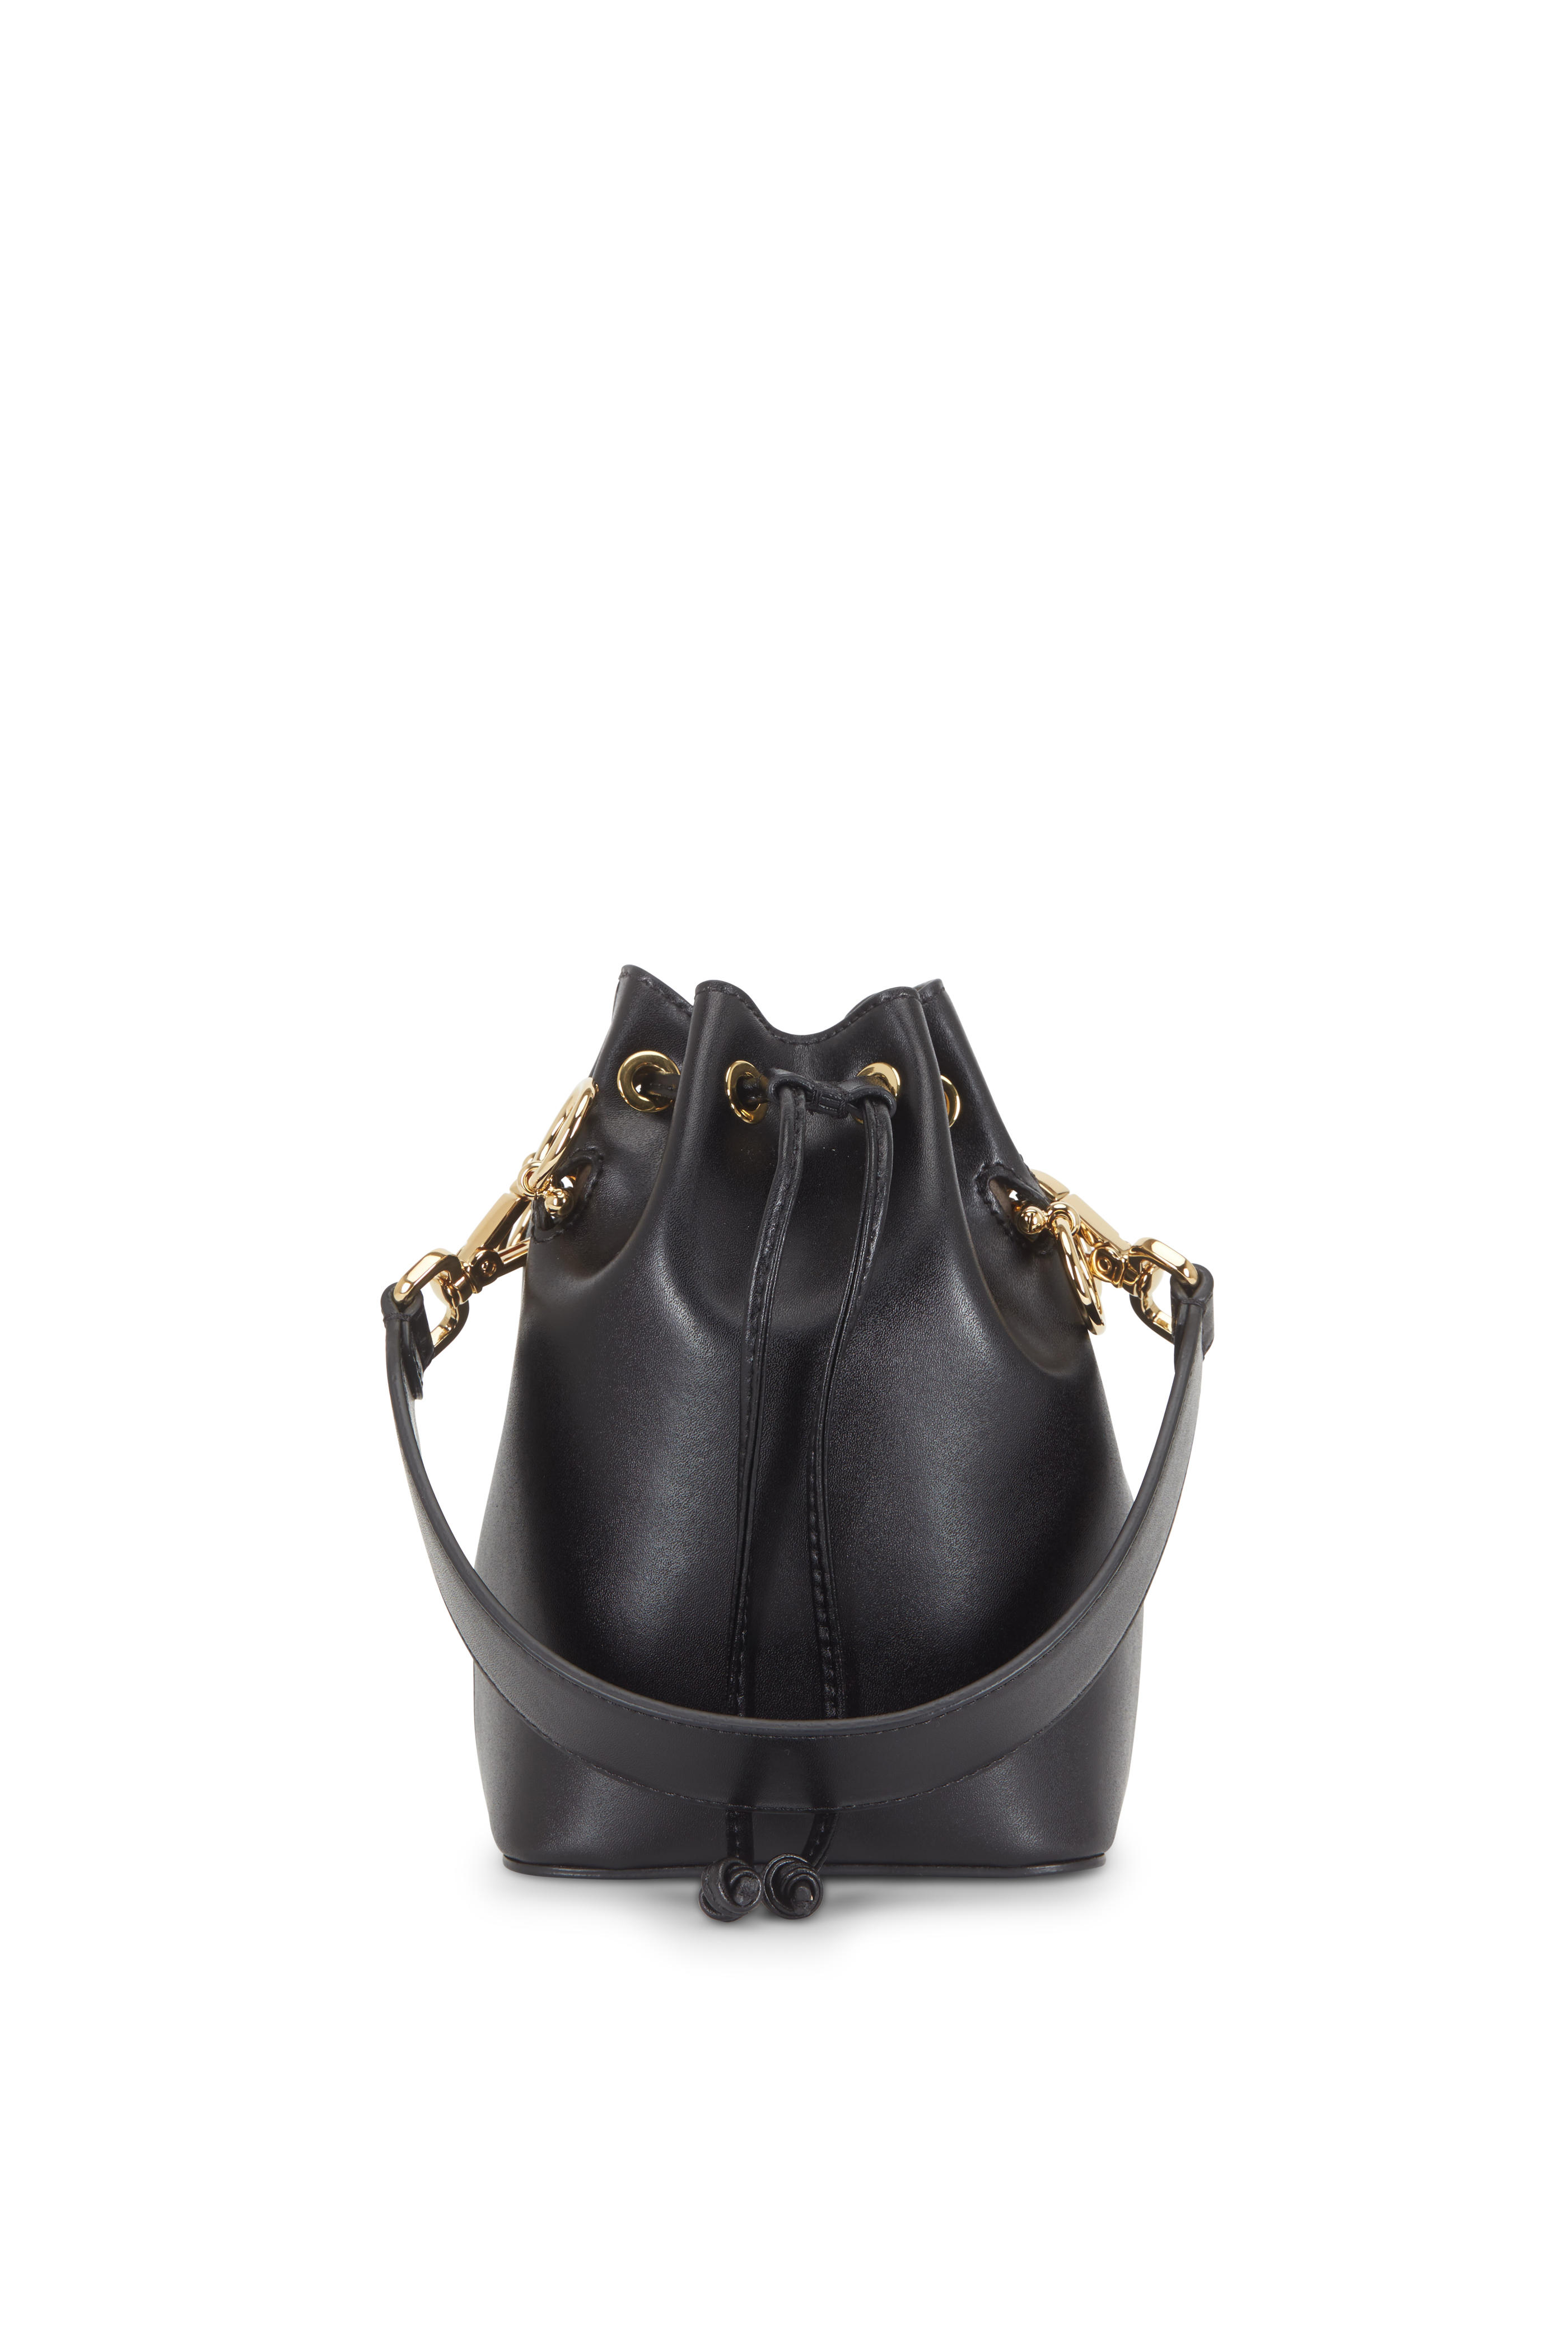 b216de887588 Fendi - Mon Tresor Black Leather Mini Bucket Bag